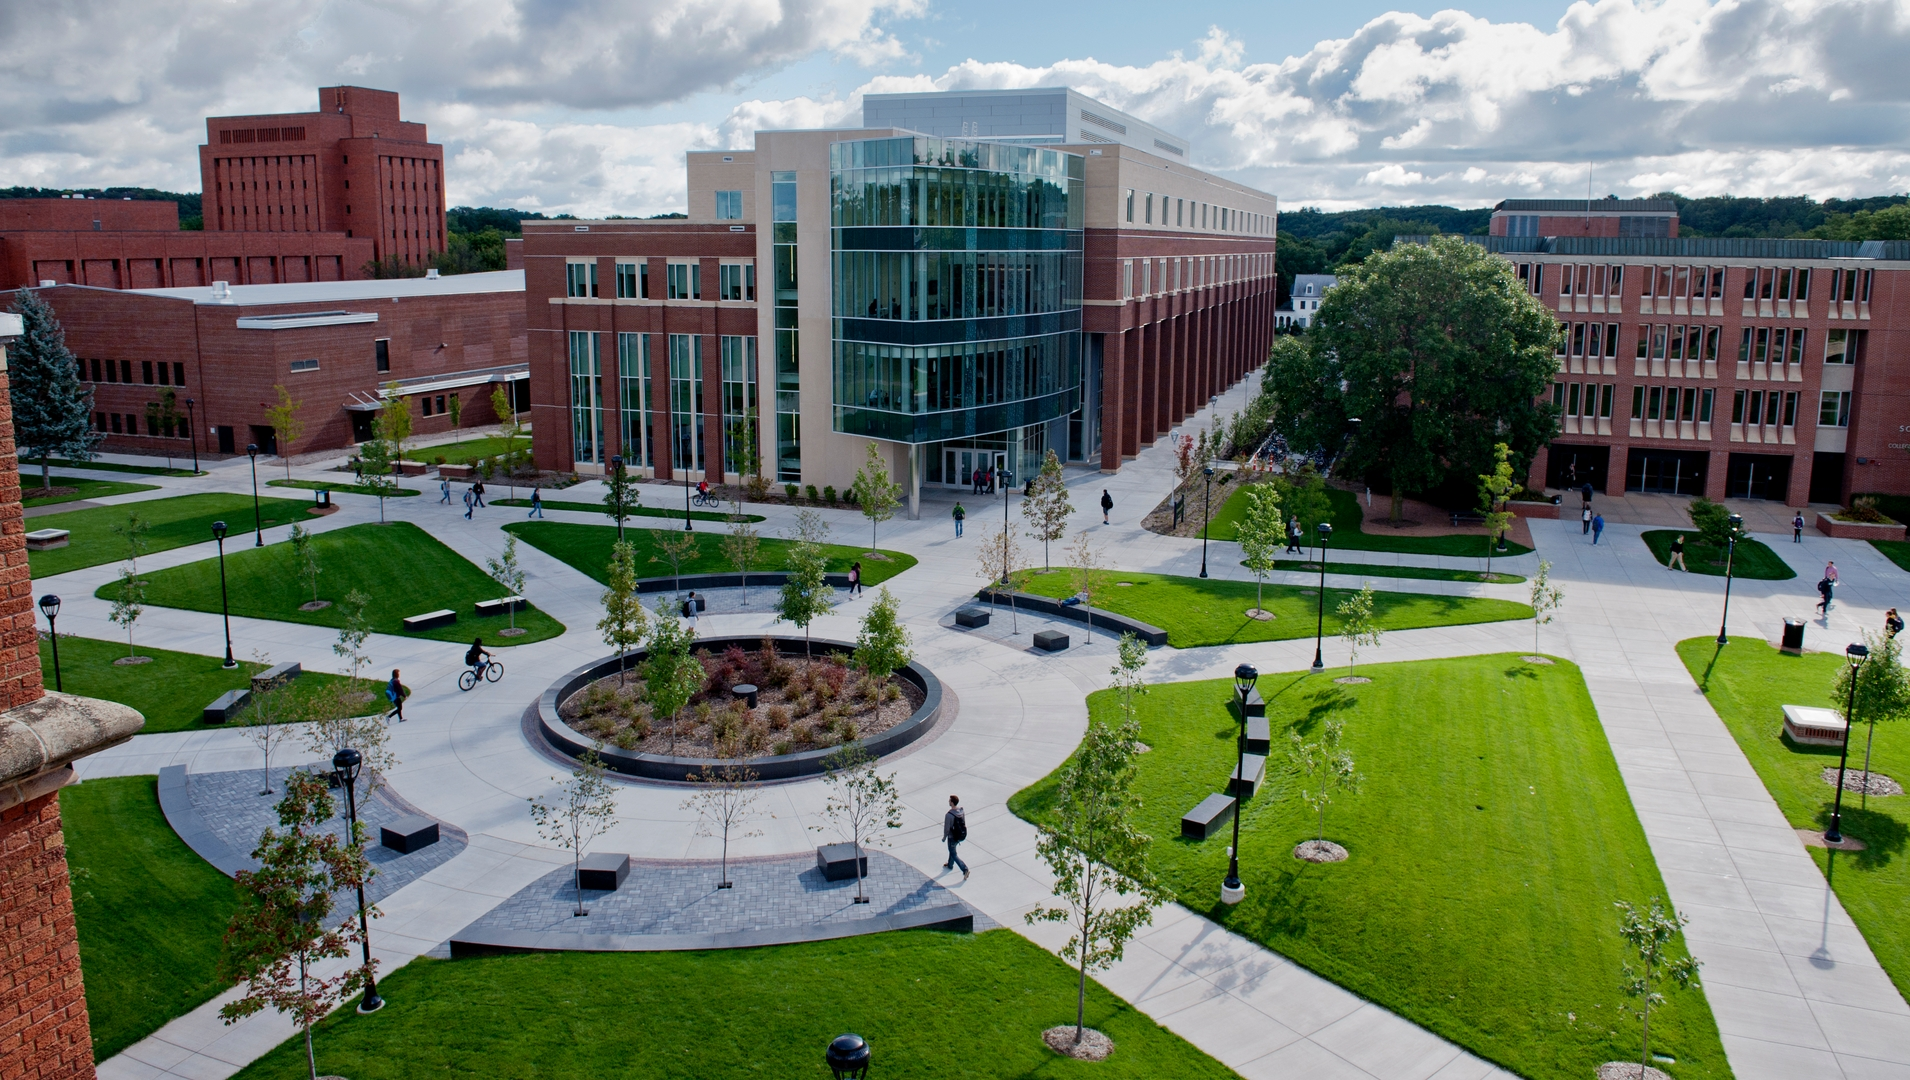 10 Easiest Courses at University of Wisconsin - Eau Claire